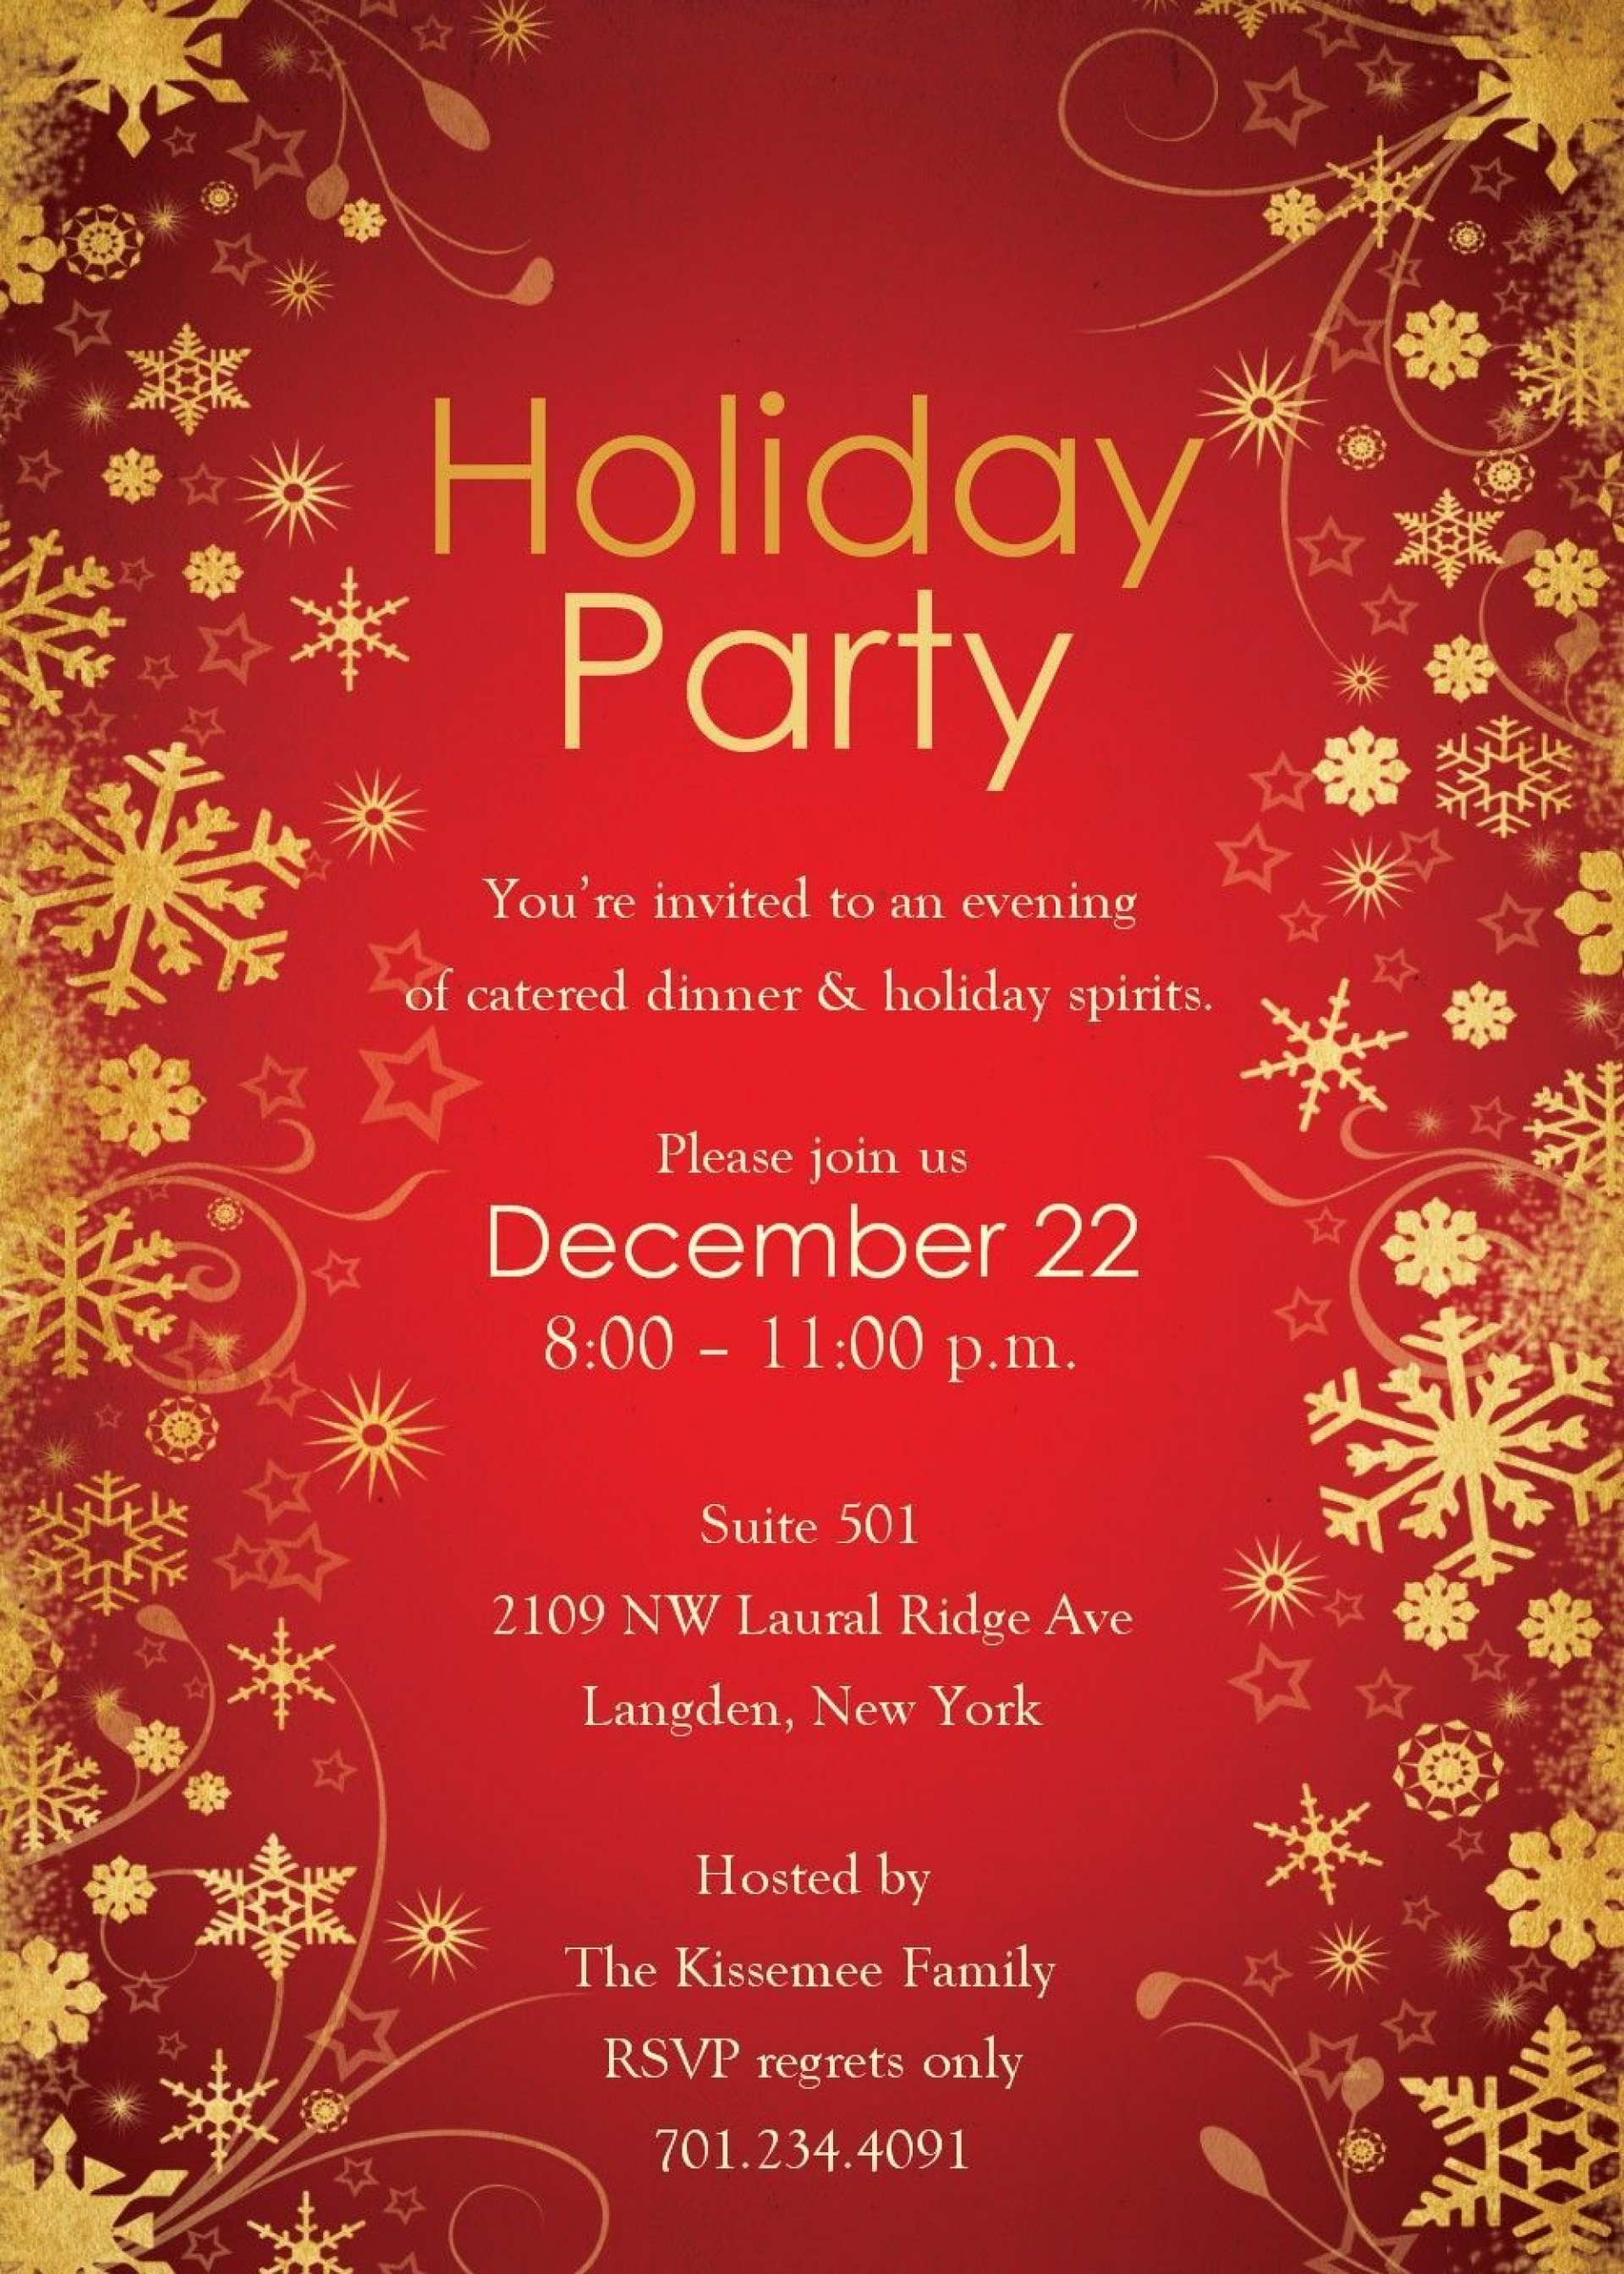 006 Imposing Free Holiday Flyer Template Design  Printable Christma Word Sale Party1920